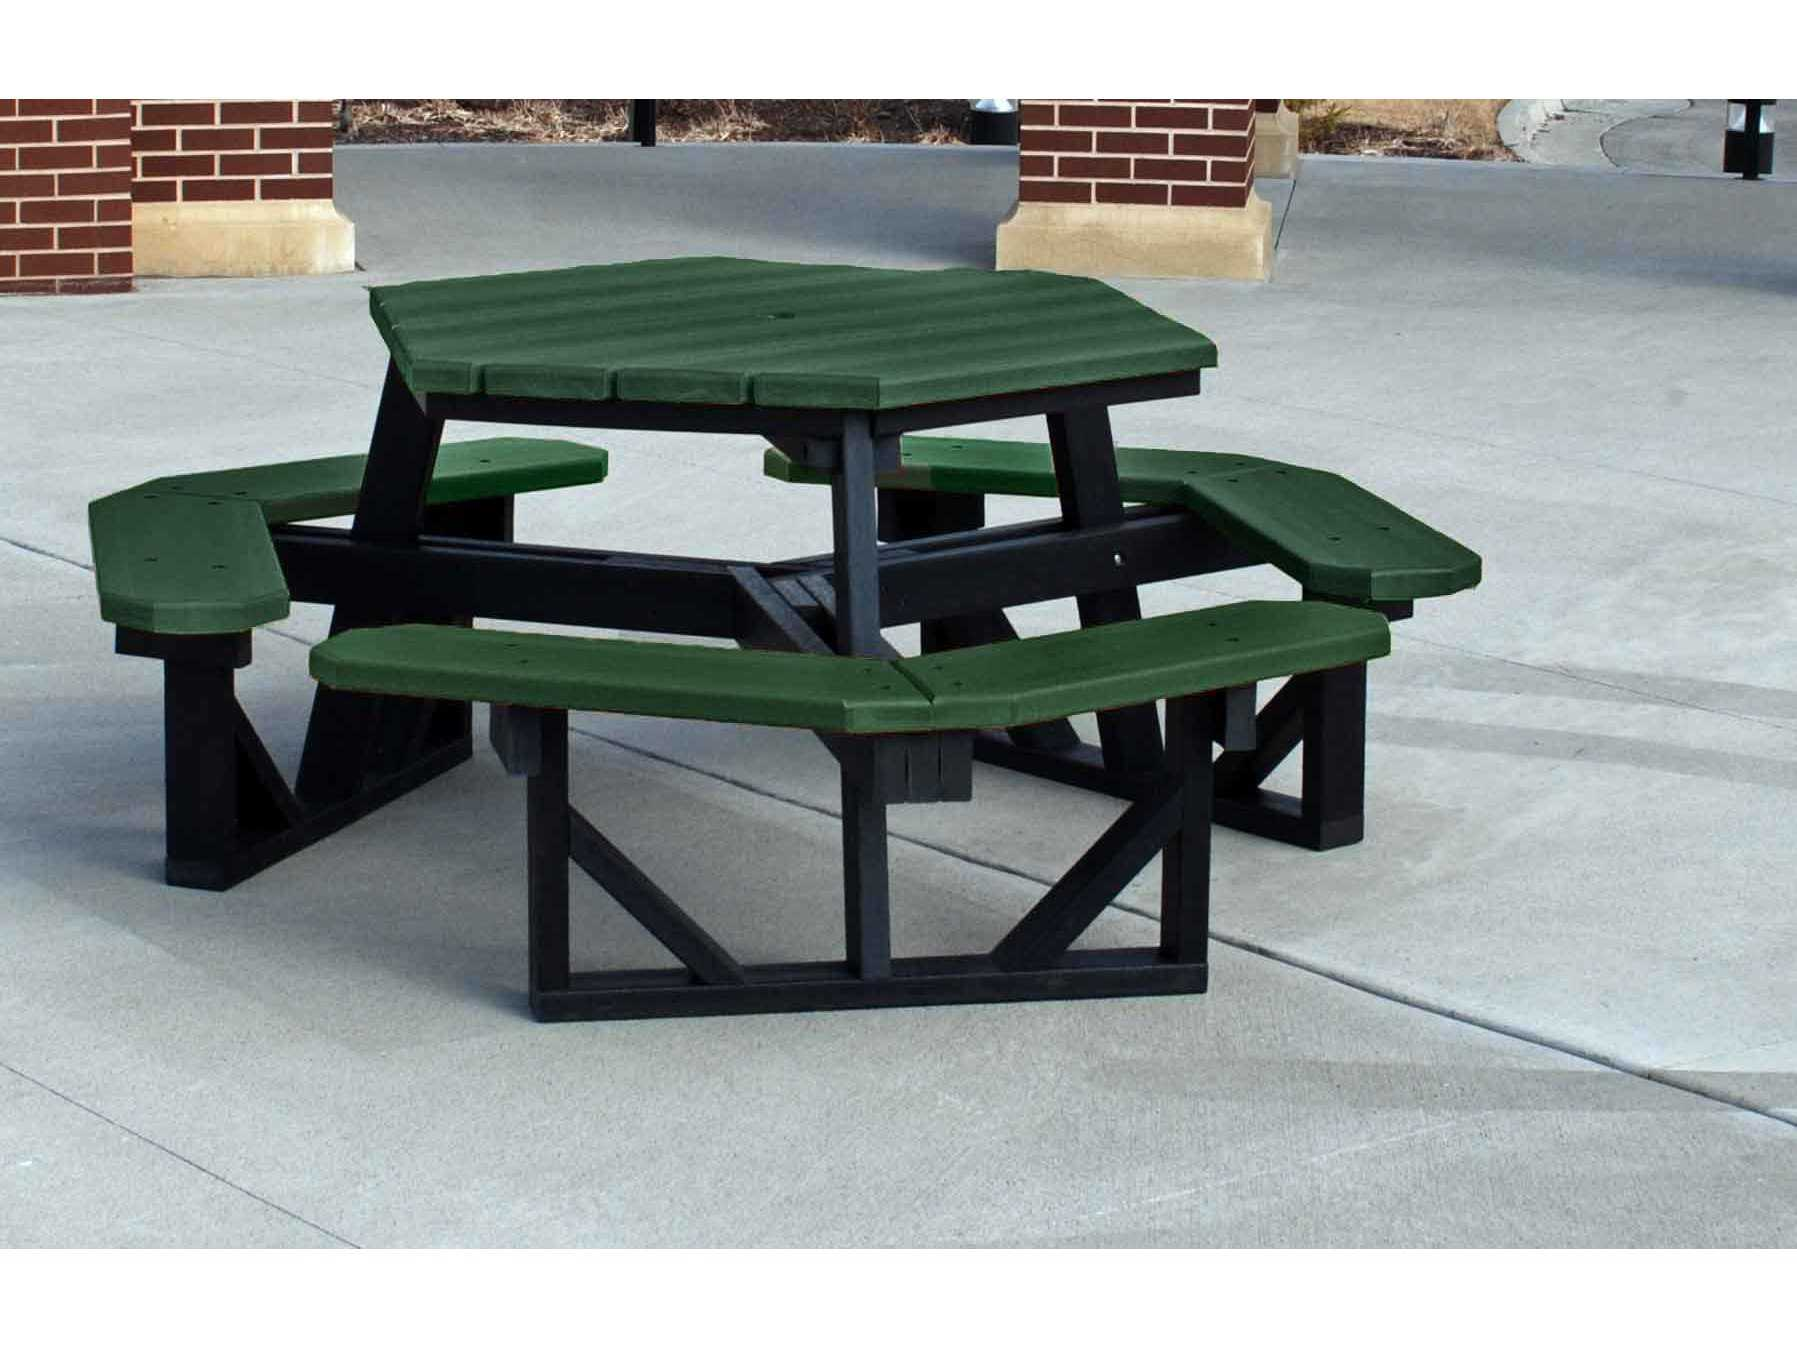 Frog Furnishings Hex Recycled Plastic 6 Ft 69 5 X 69 5